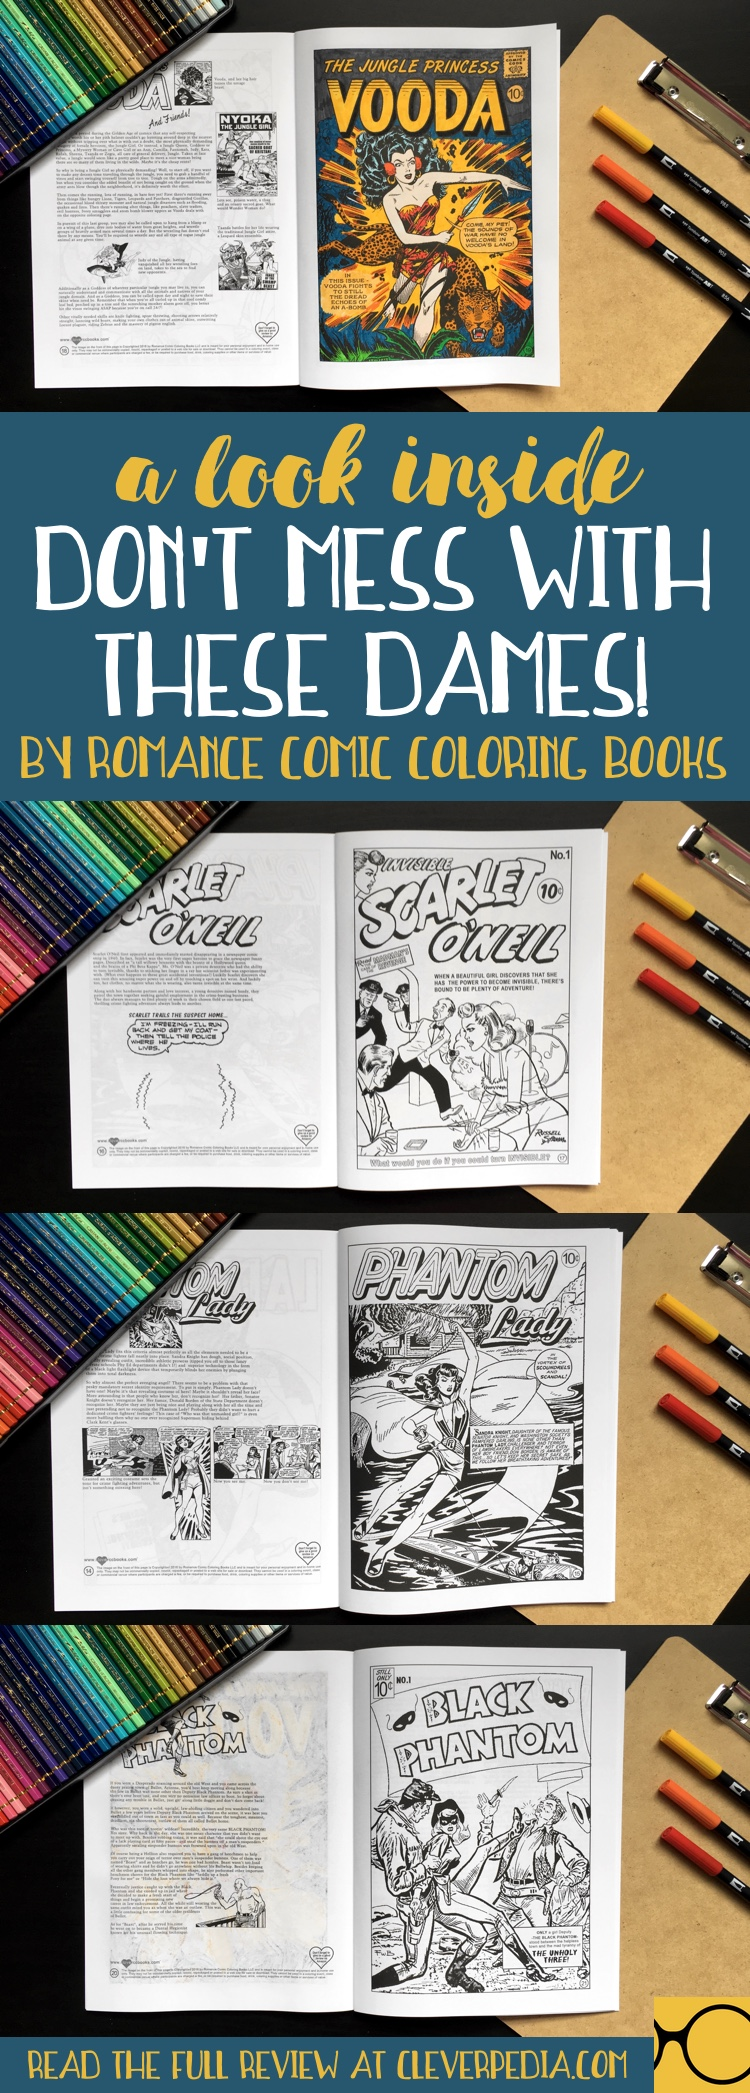 This coloring book celebrates the powerful lady crime fighters from a bygone era of comics. Enter to win your own copy, plus a one-of-a-kind coloring t-shirt!